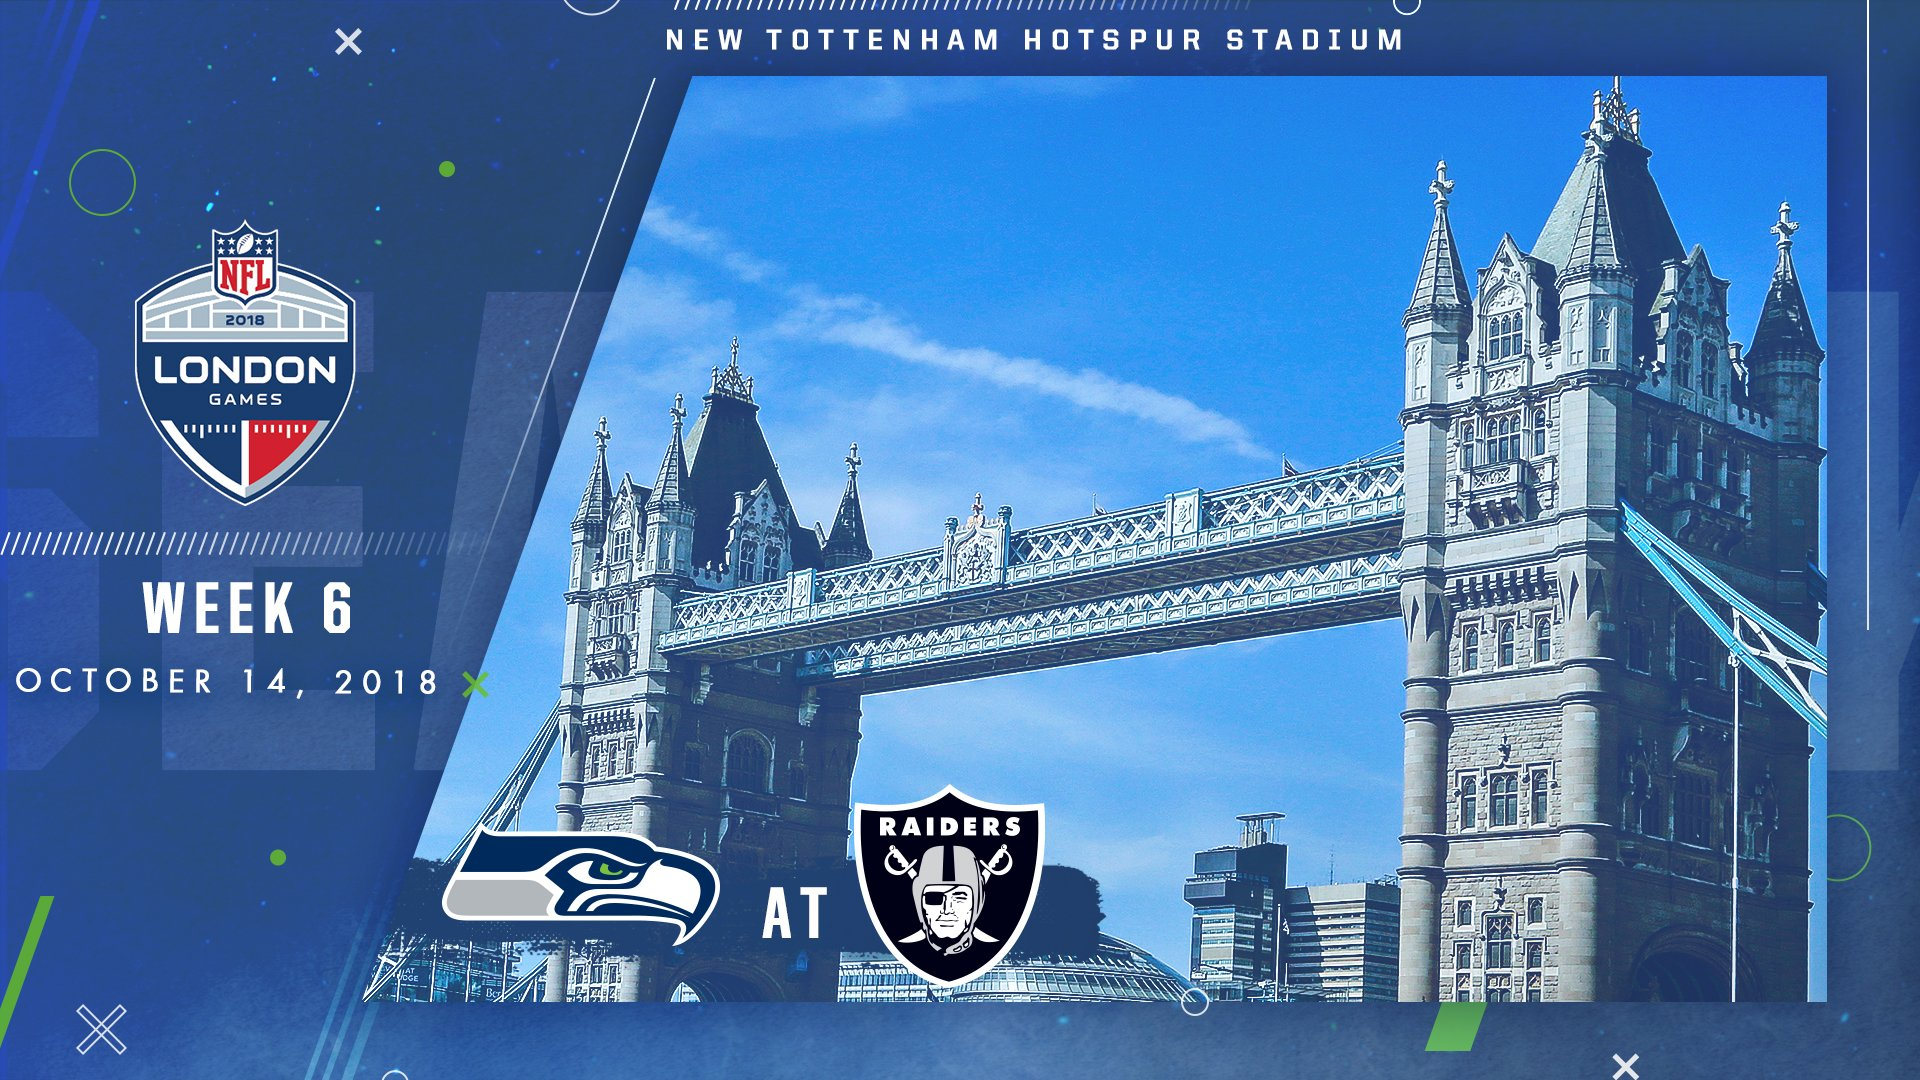 In 2018, we clash with the Raiders in London. #GoHawks   ���� | https://t.co/ZXsJqzMvSA https://t.co/tM7tqpJaPg